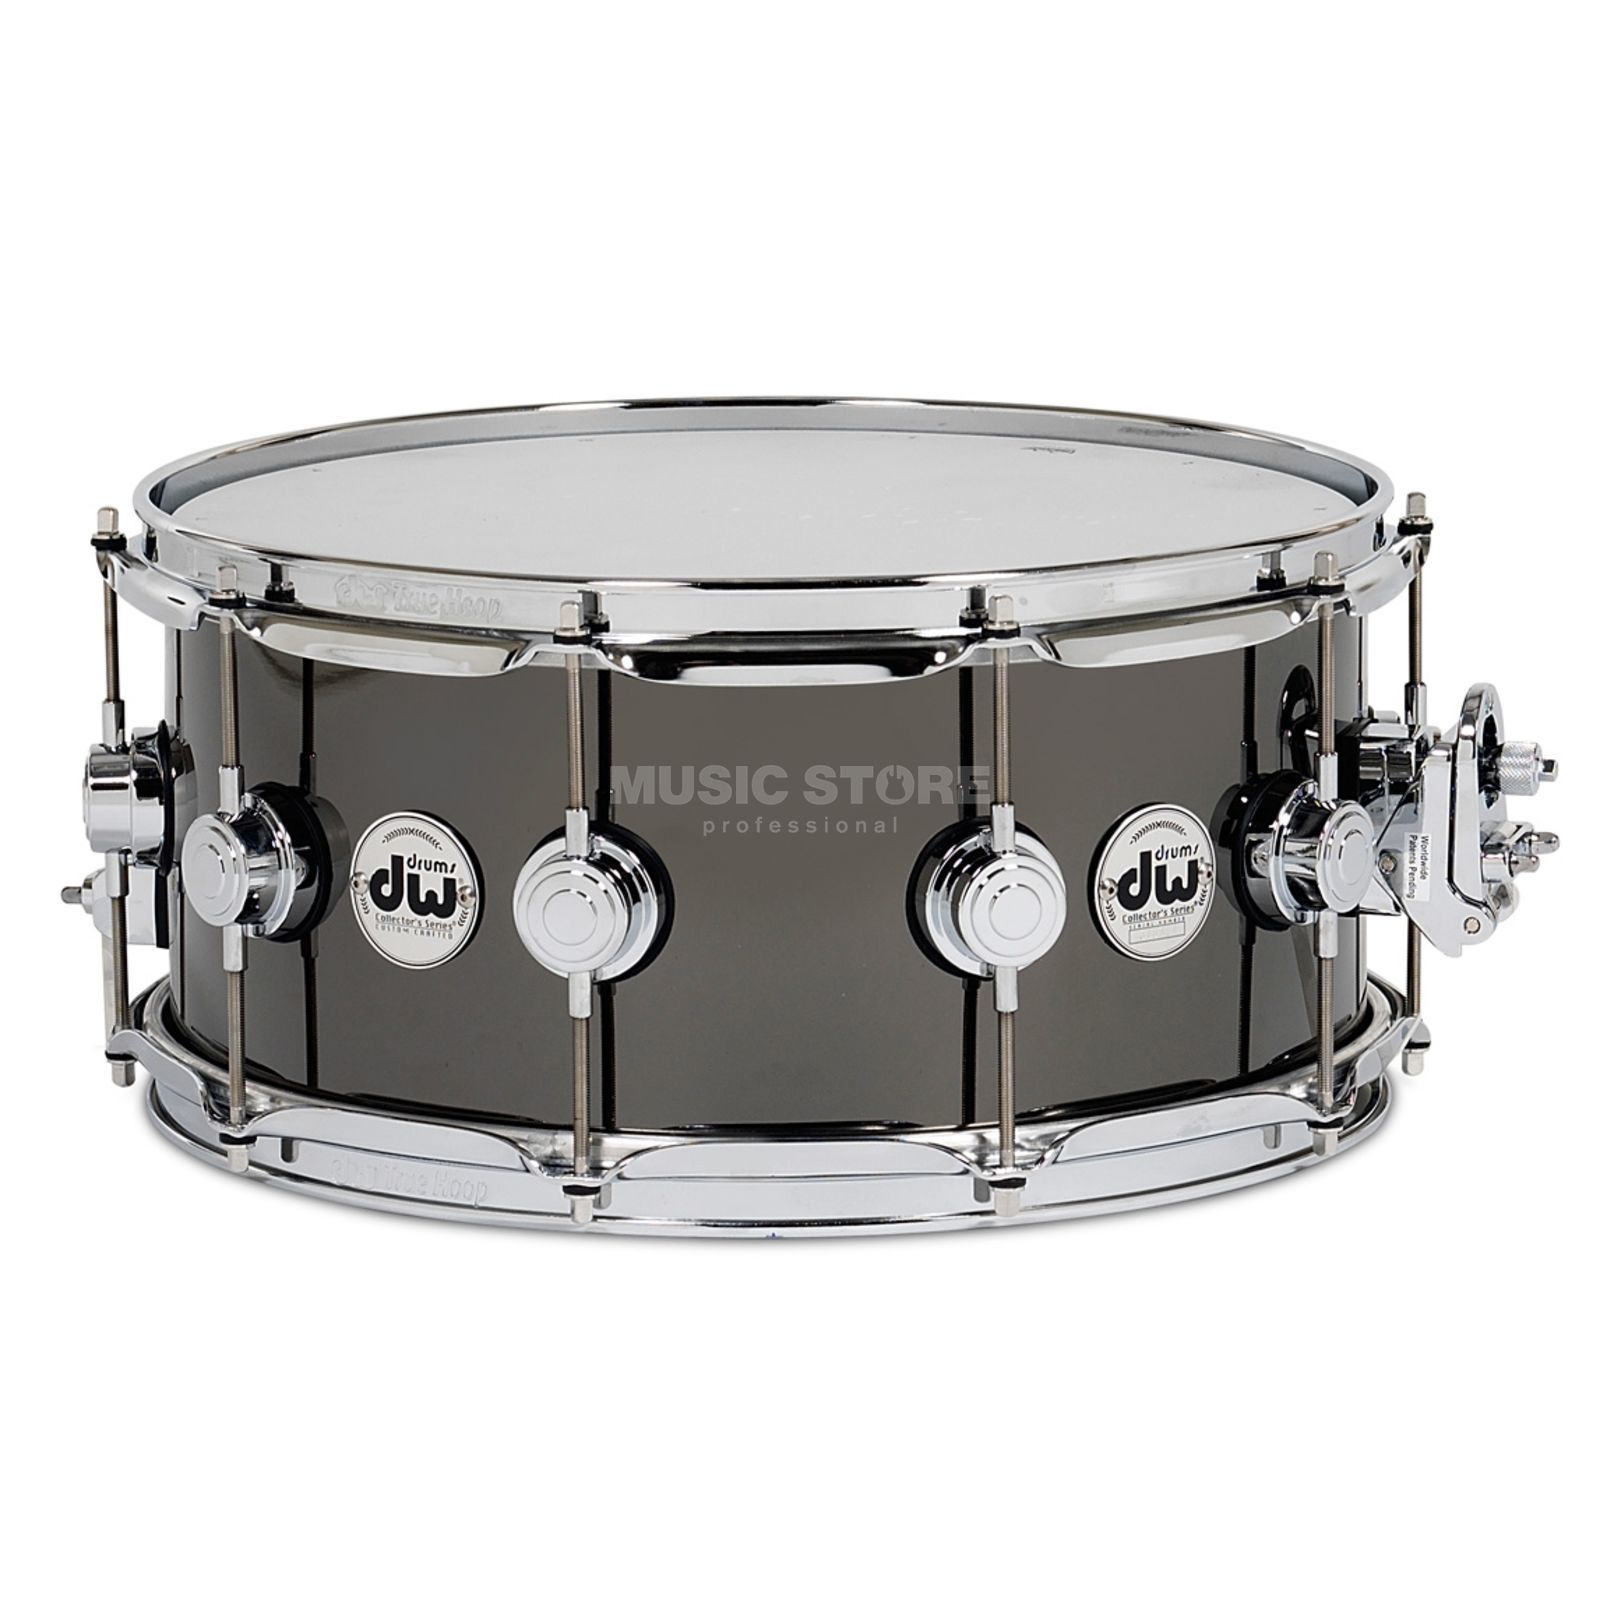 Drum Workshop Collector Snare 14x5,5 Snare Black Nickel over Brass Produktbild